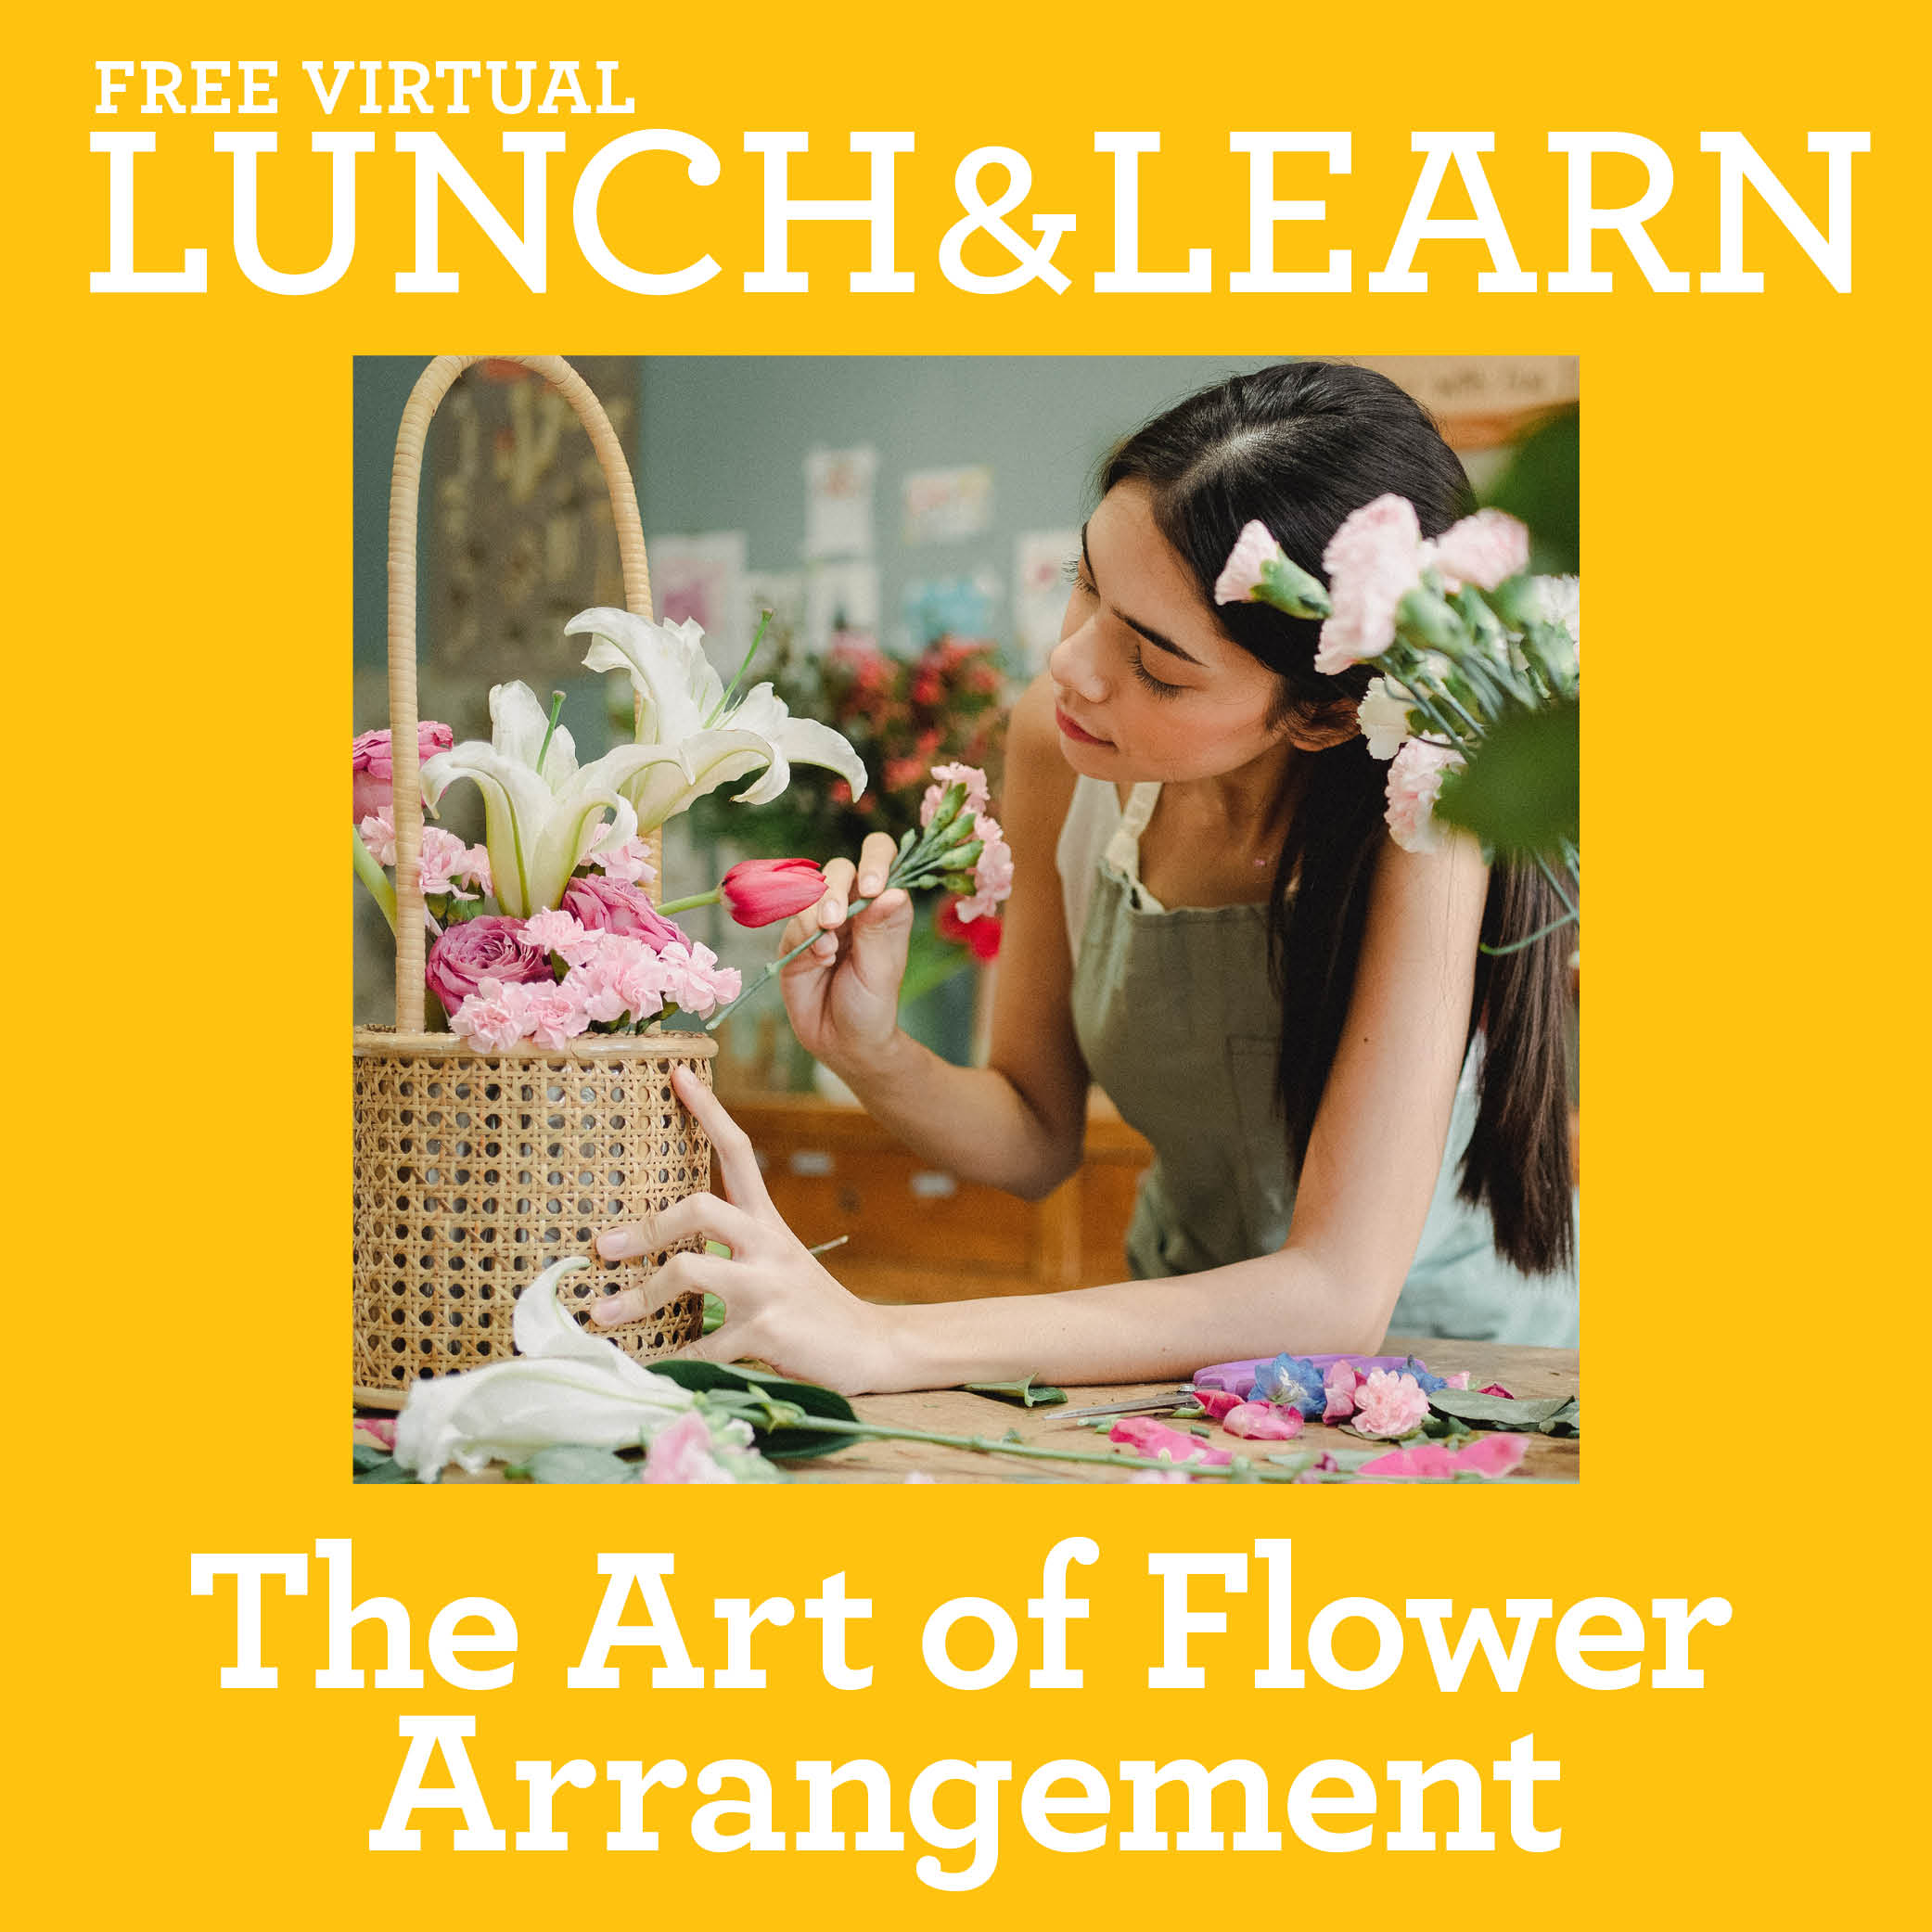 Lunch & Learn The Art of Flower Arrangement